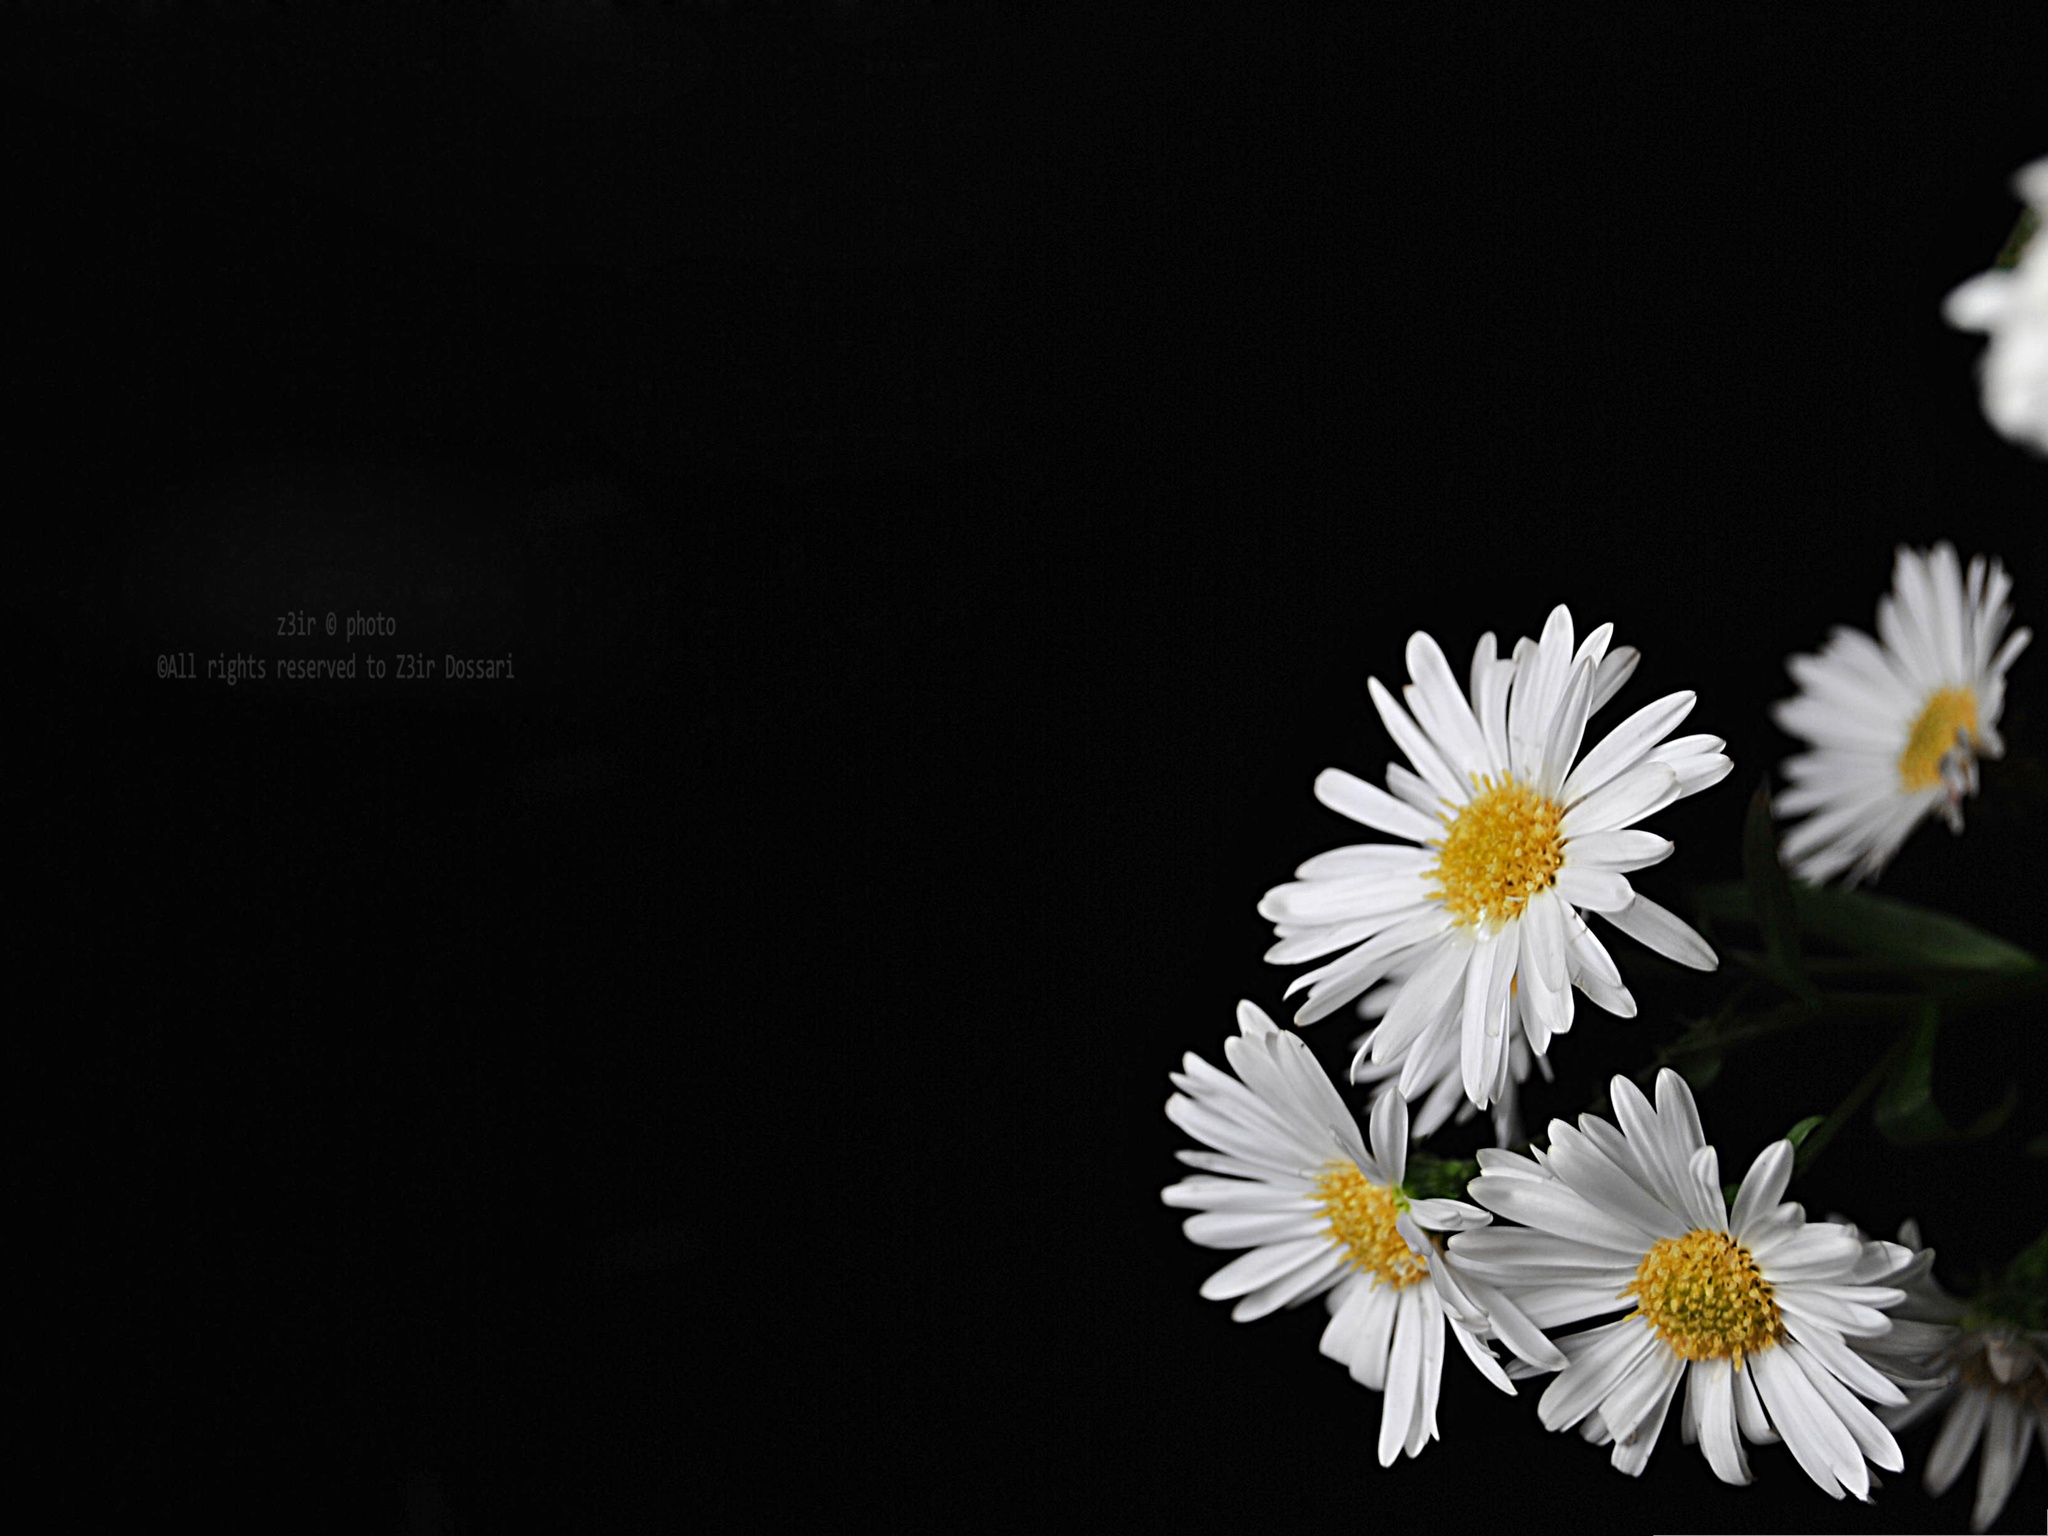 Black Background Wallpaper with Flowers - WallpaperSafari